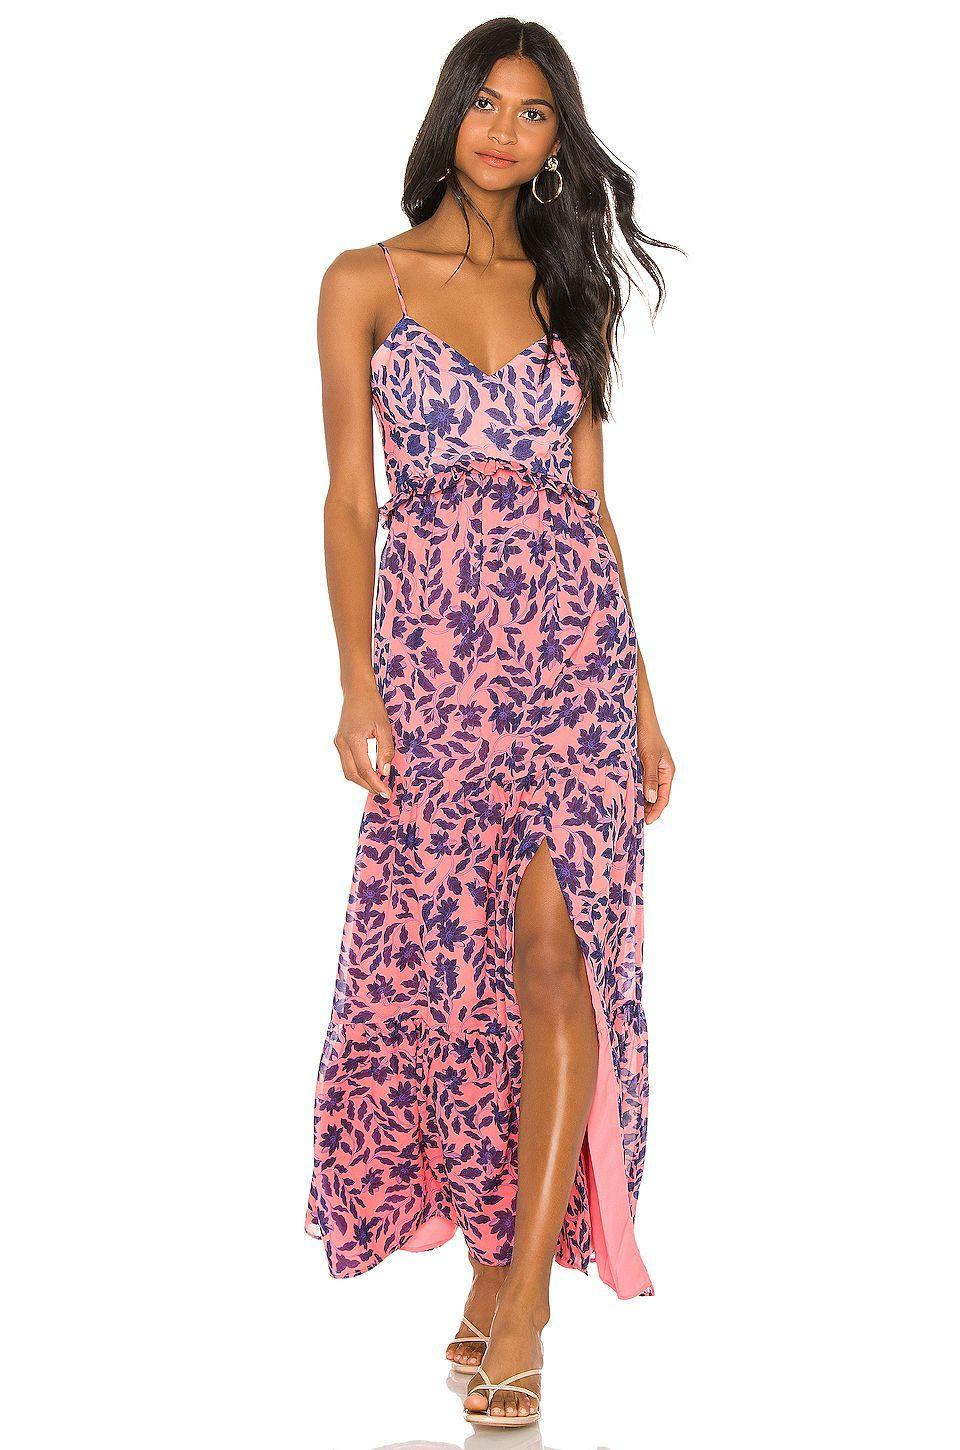 """<p><strong>House of Harlow 1960</strong></p><p>revolve.com</p><p><strong>$218.00</strong></p><p><a href=""""https://go.redirectingat.com?id=74968X1596630&url=https%3A%2F%2Fwww.revolve.com%2Fdp%2FHOOF-WD497%2F&sref=https%3A%2F%2Fwww.goodhousekeeping.com%2Fbeauty%2Ffashion%2Fg31811906%2Fcute-summer-outfits%2F"""" rel=""""nofollow noopener"""" target=""""_blank"""" data-ylk=""""slk:Shop Now"""" class=""""link rapid-noclick-resp"""">Shop Now</a></p><p>Florals will never stop looking fresh for summer. Look for smaller prints in bright colors to make your outfit standout. </p>"""